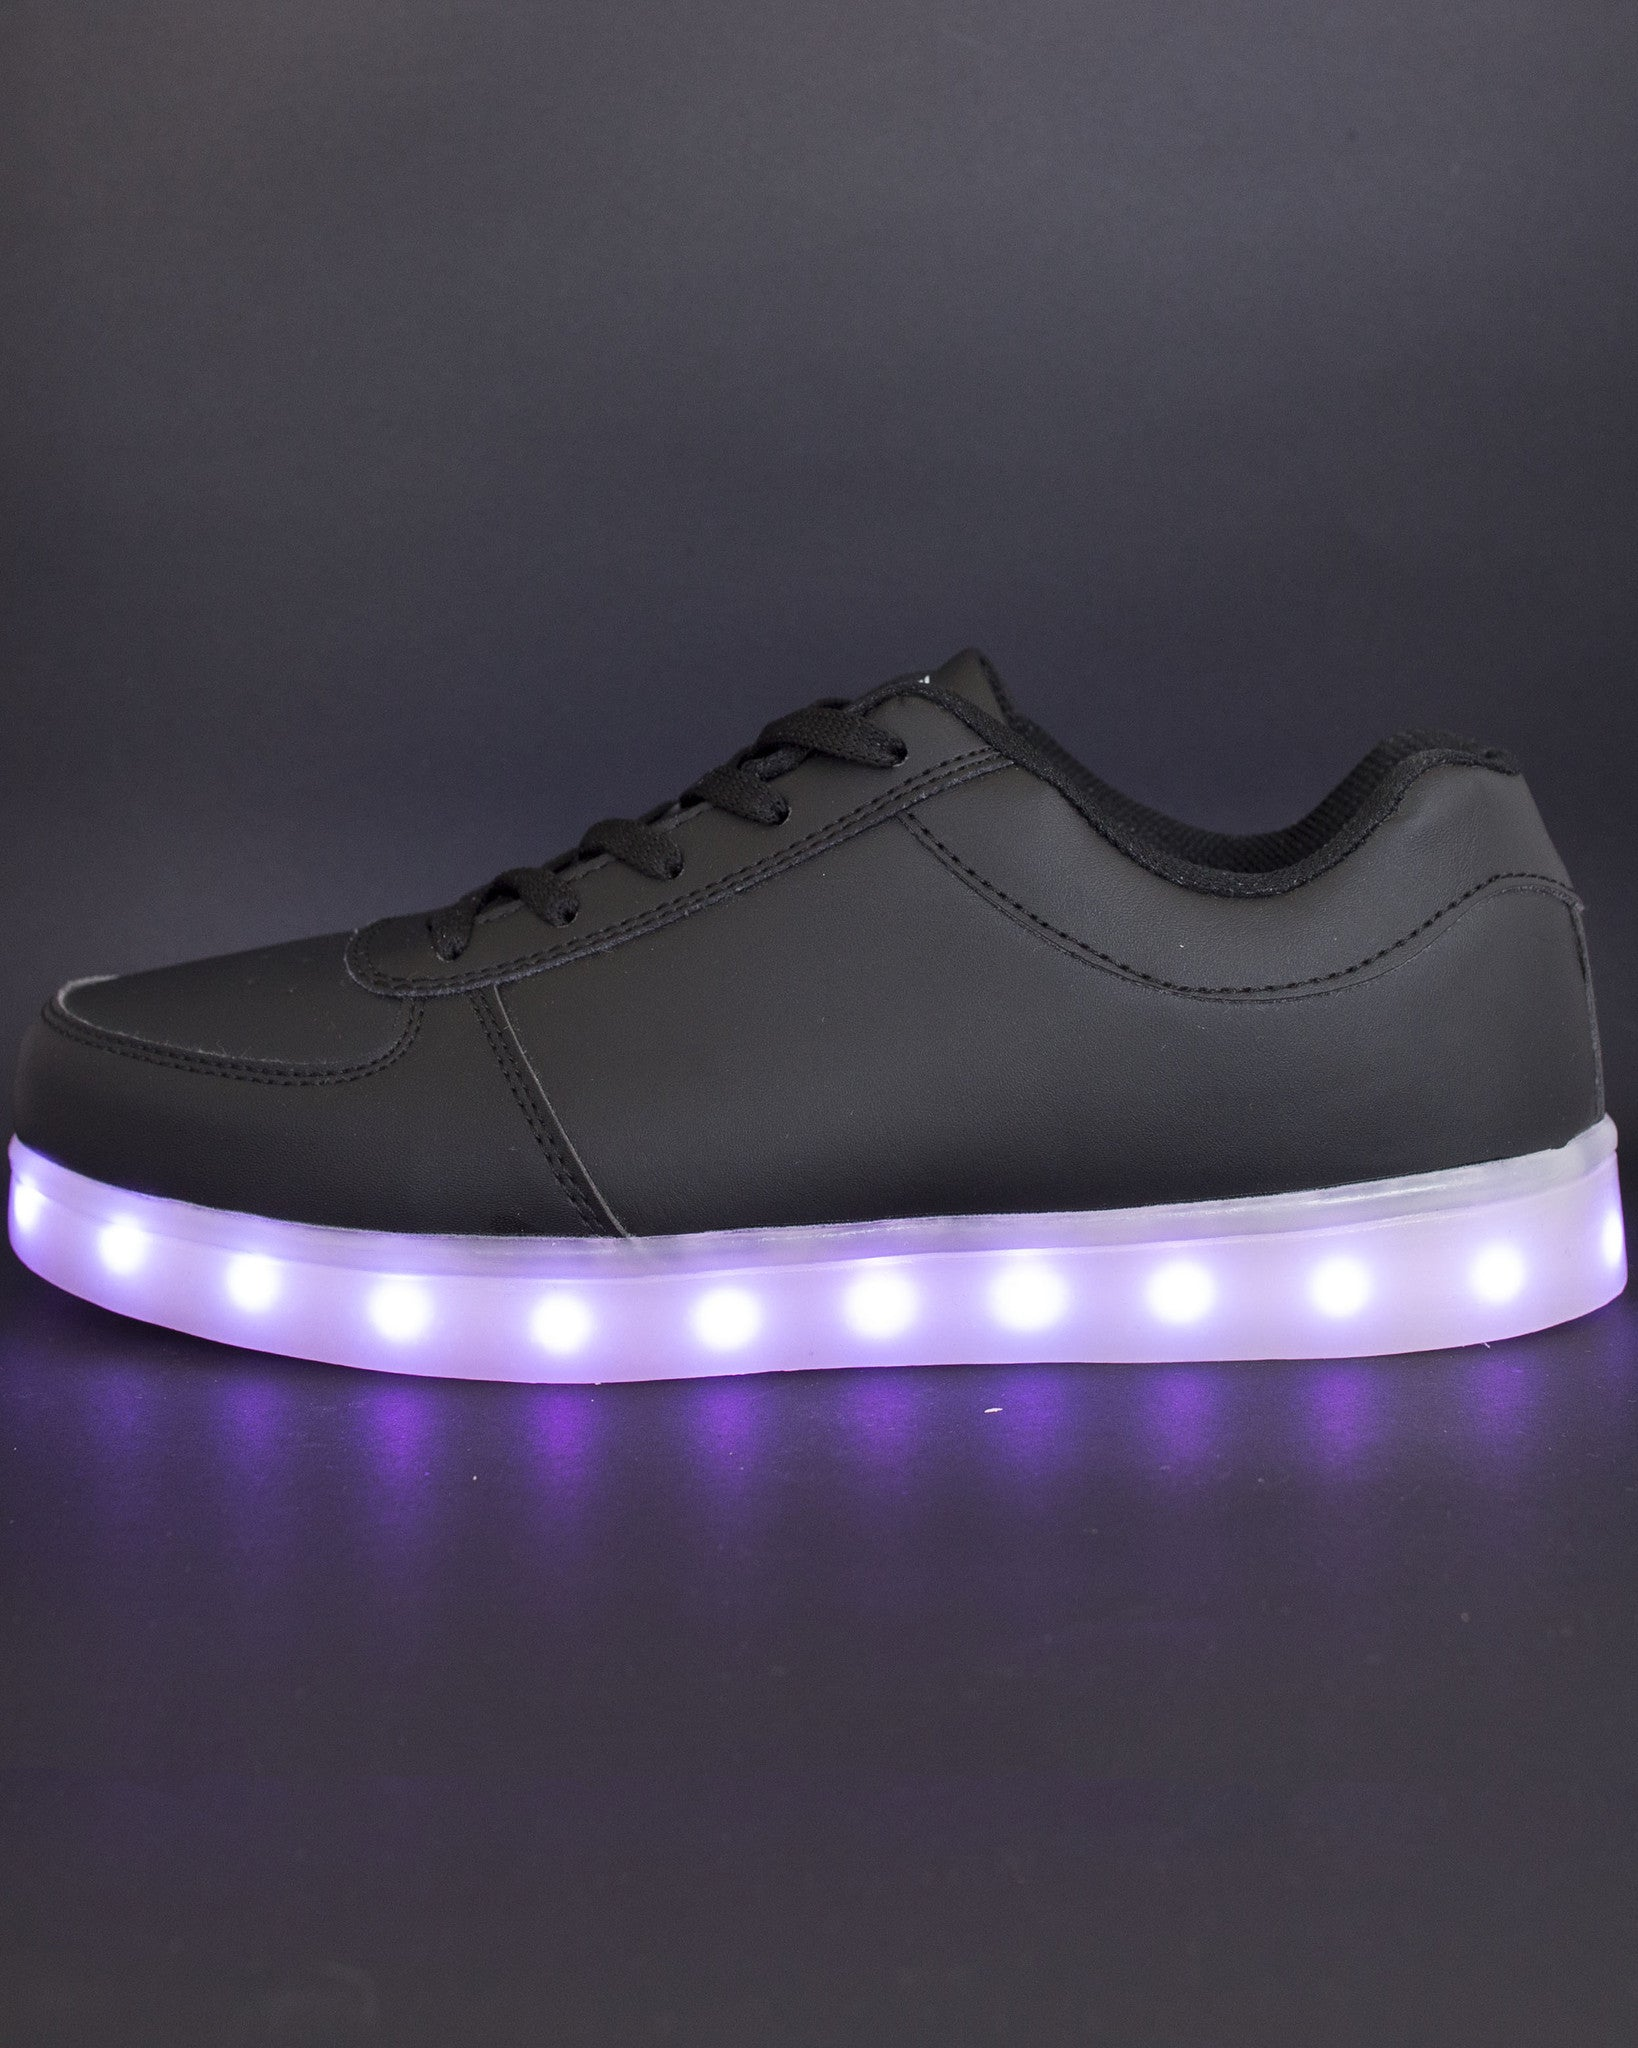 Light Up Shoes - All Black - Electric Styles | World's Number 1 Light Up Shoe Store - {product_type}} -  - 6